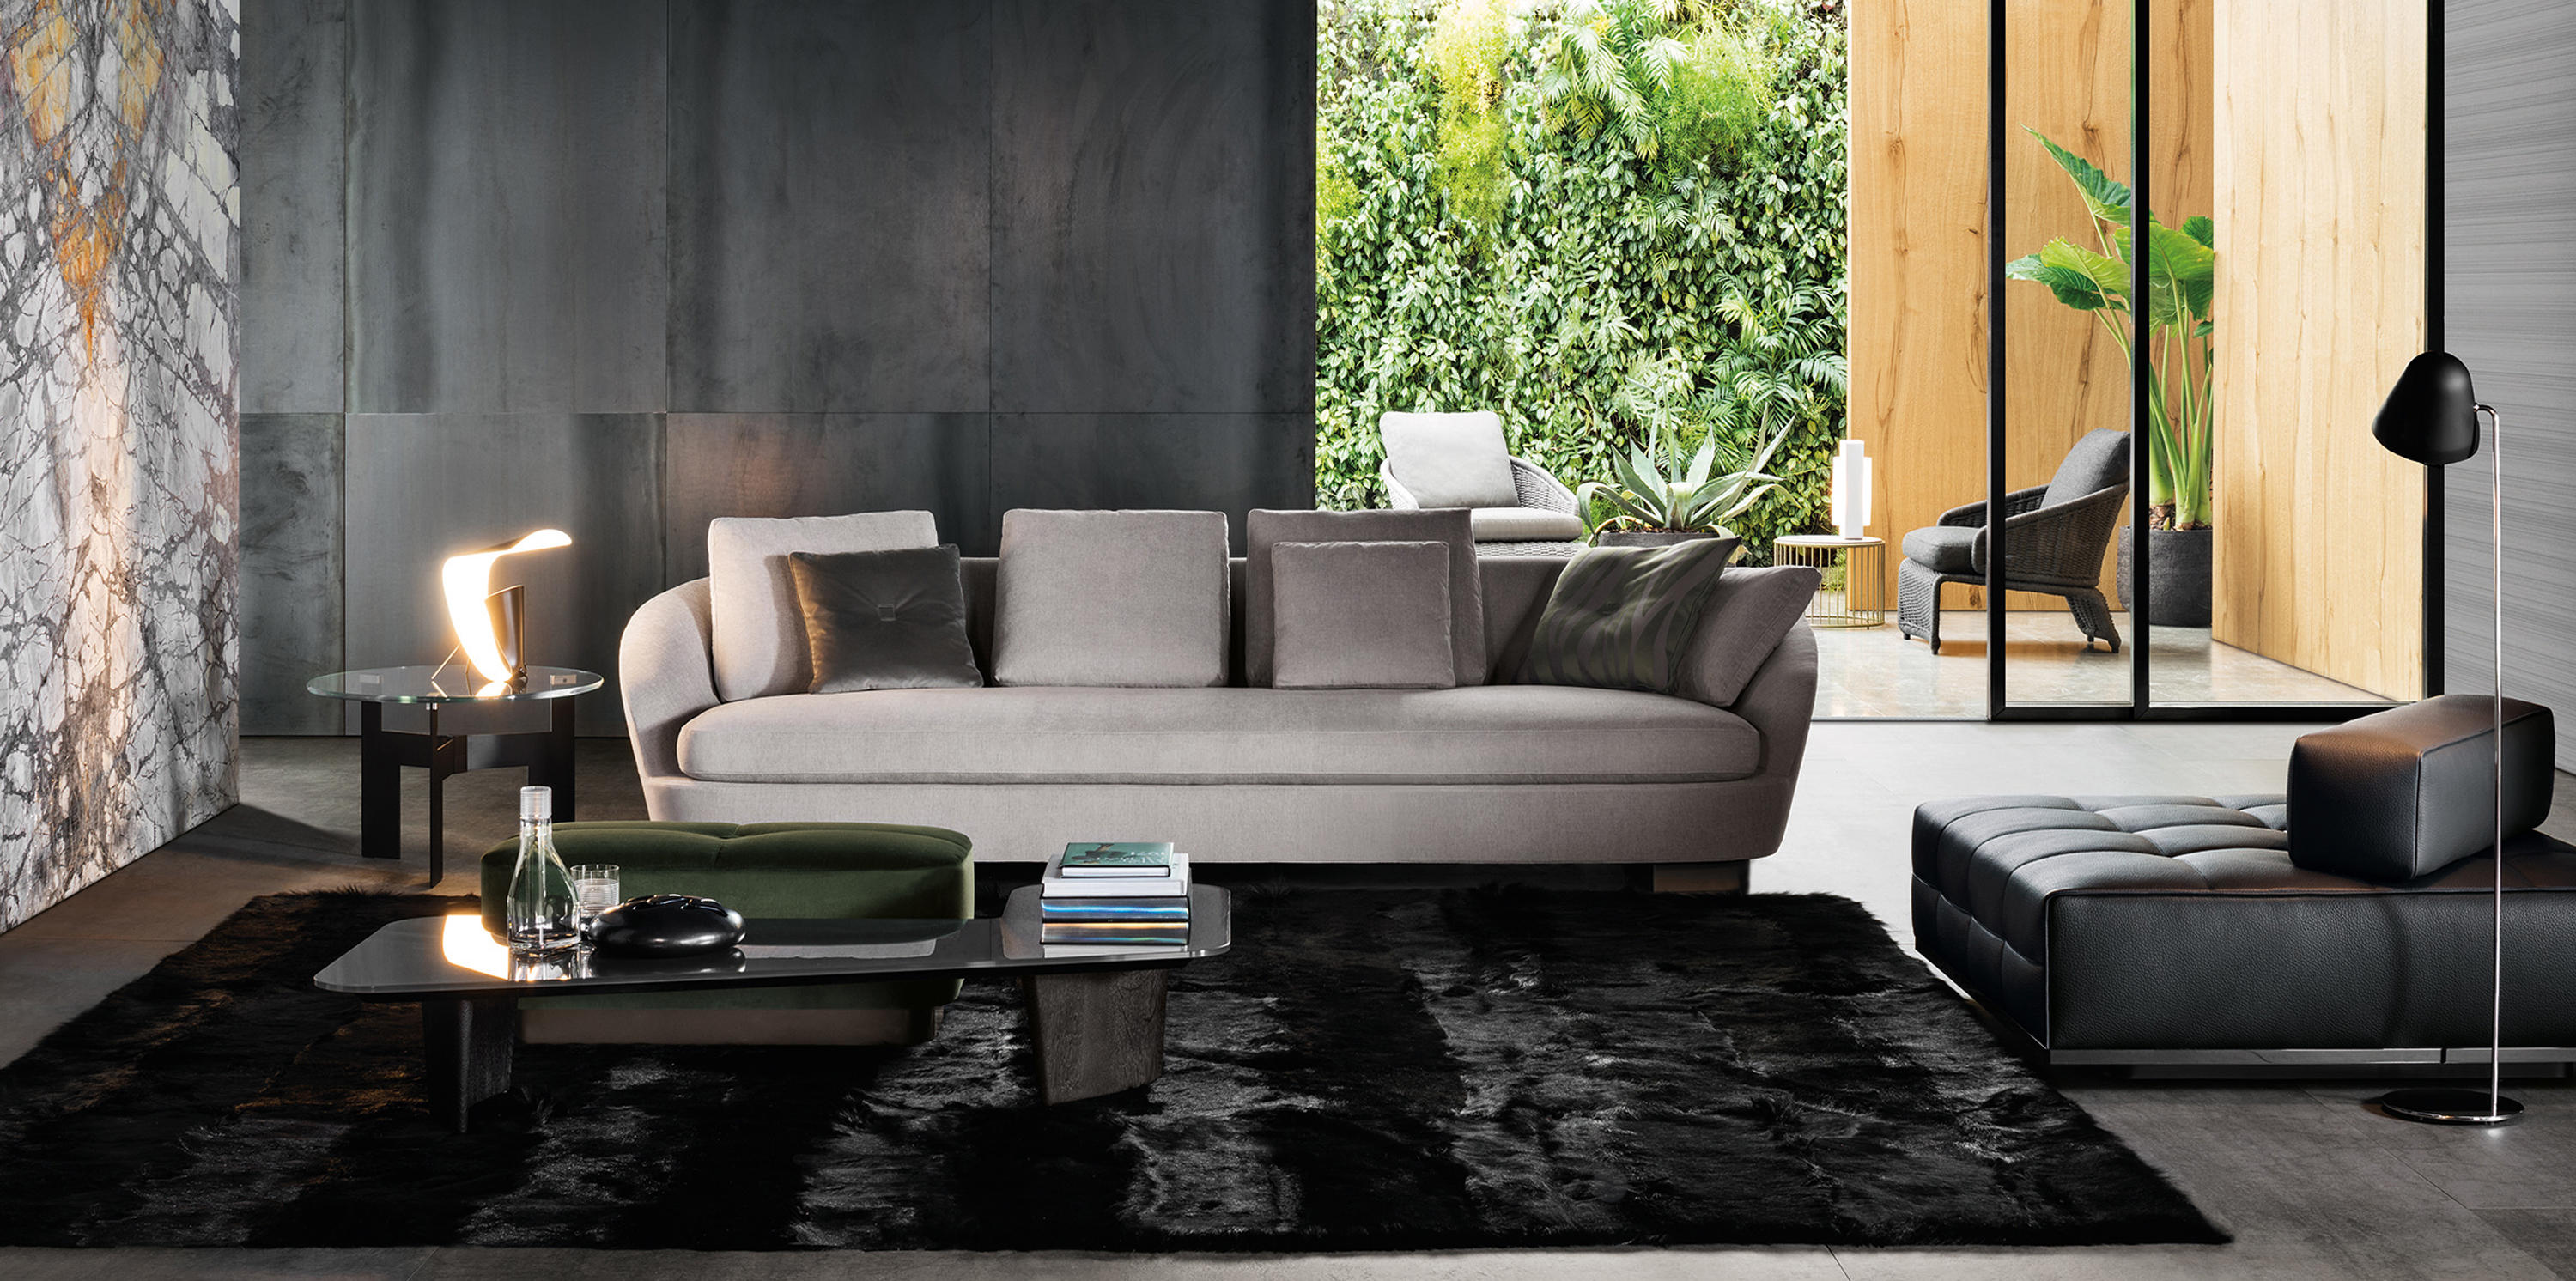 jacques armchair lounge chairs from minotti architonic. Black Bedroom Furniture Sets. Home Design Ideas